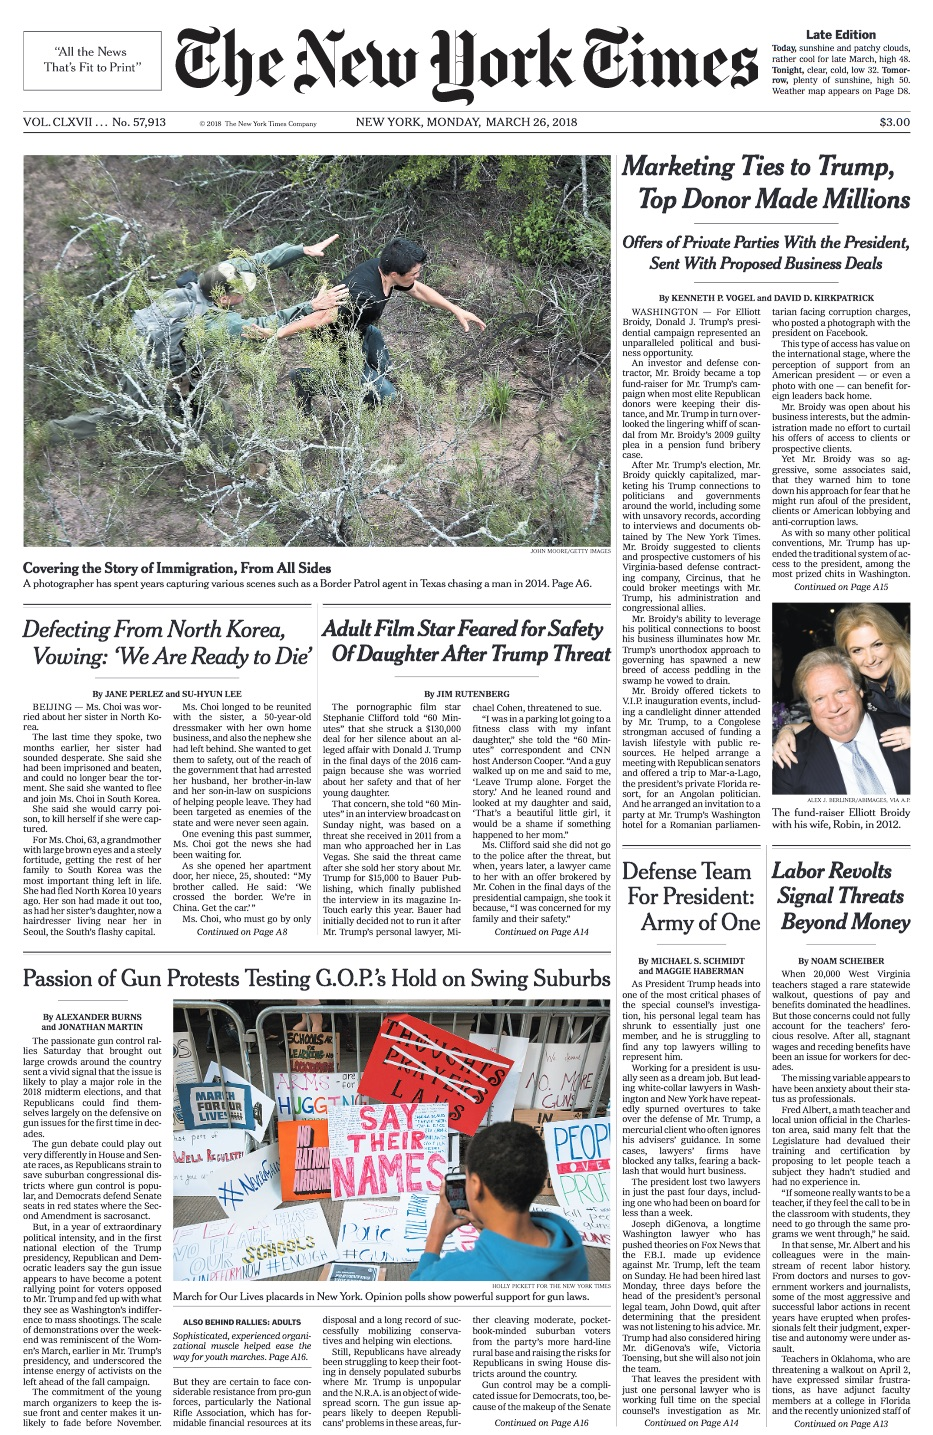 NYT_FrontPage_032618.jpg